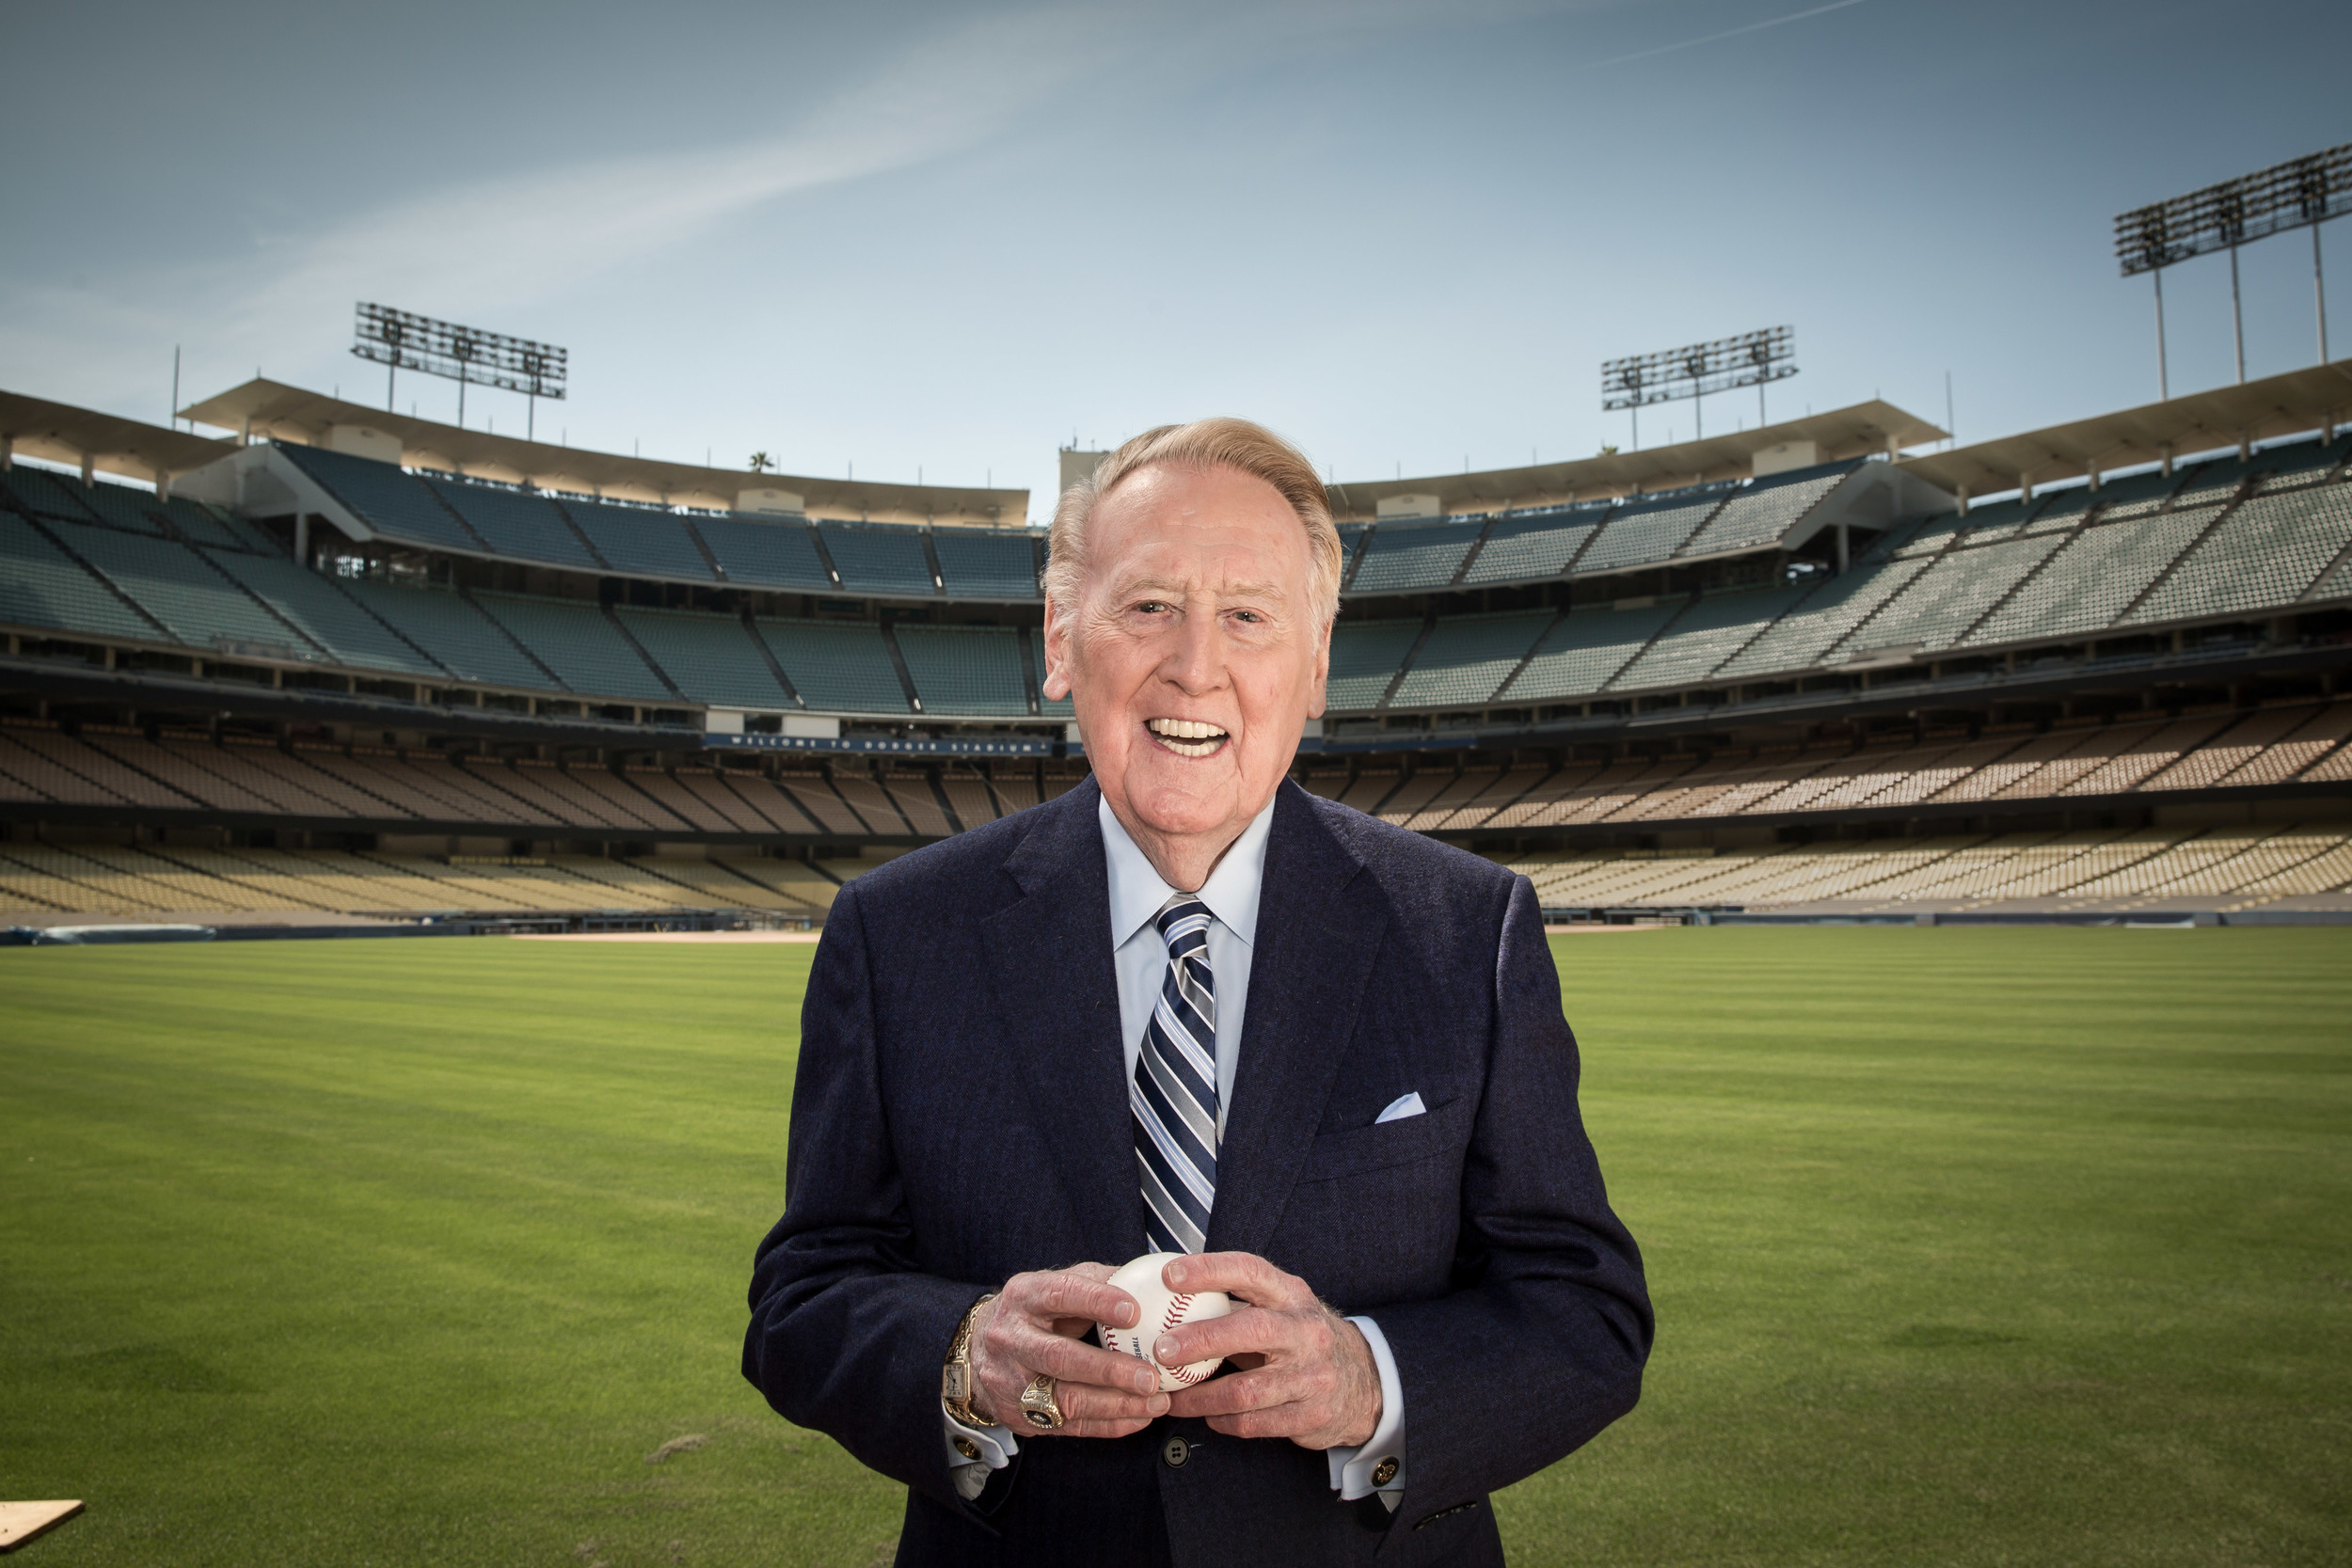 VinScully-8779.jpg